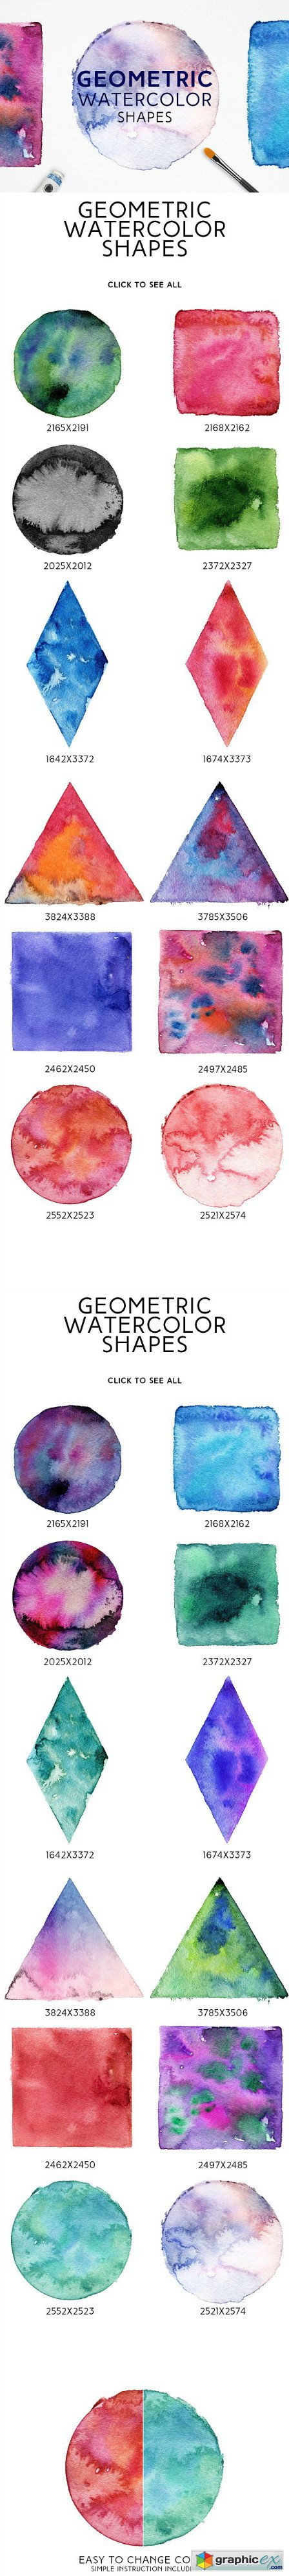 Geometric Watercolor Shapes